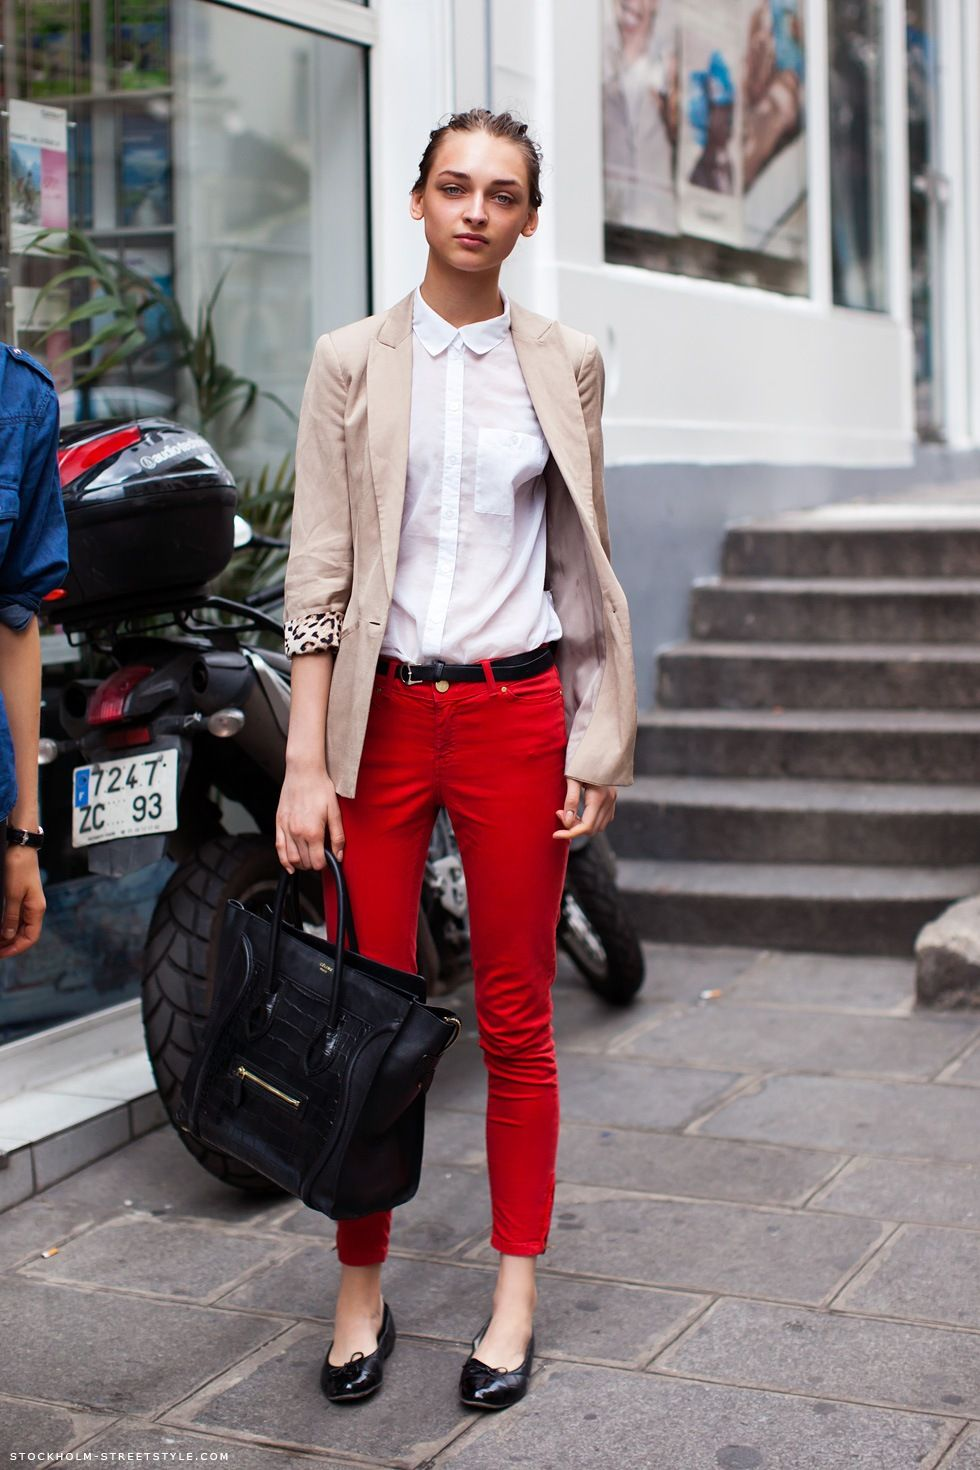 Get the look of polish model Daga Ziober, match skinny bright jeans with a  boyfriend blazer. The red jeans makes the outfit pop and they also go great  with ...